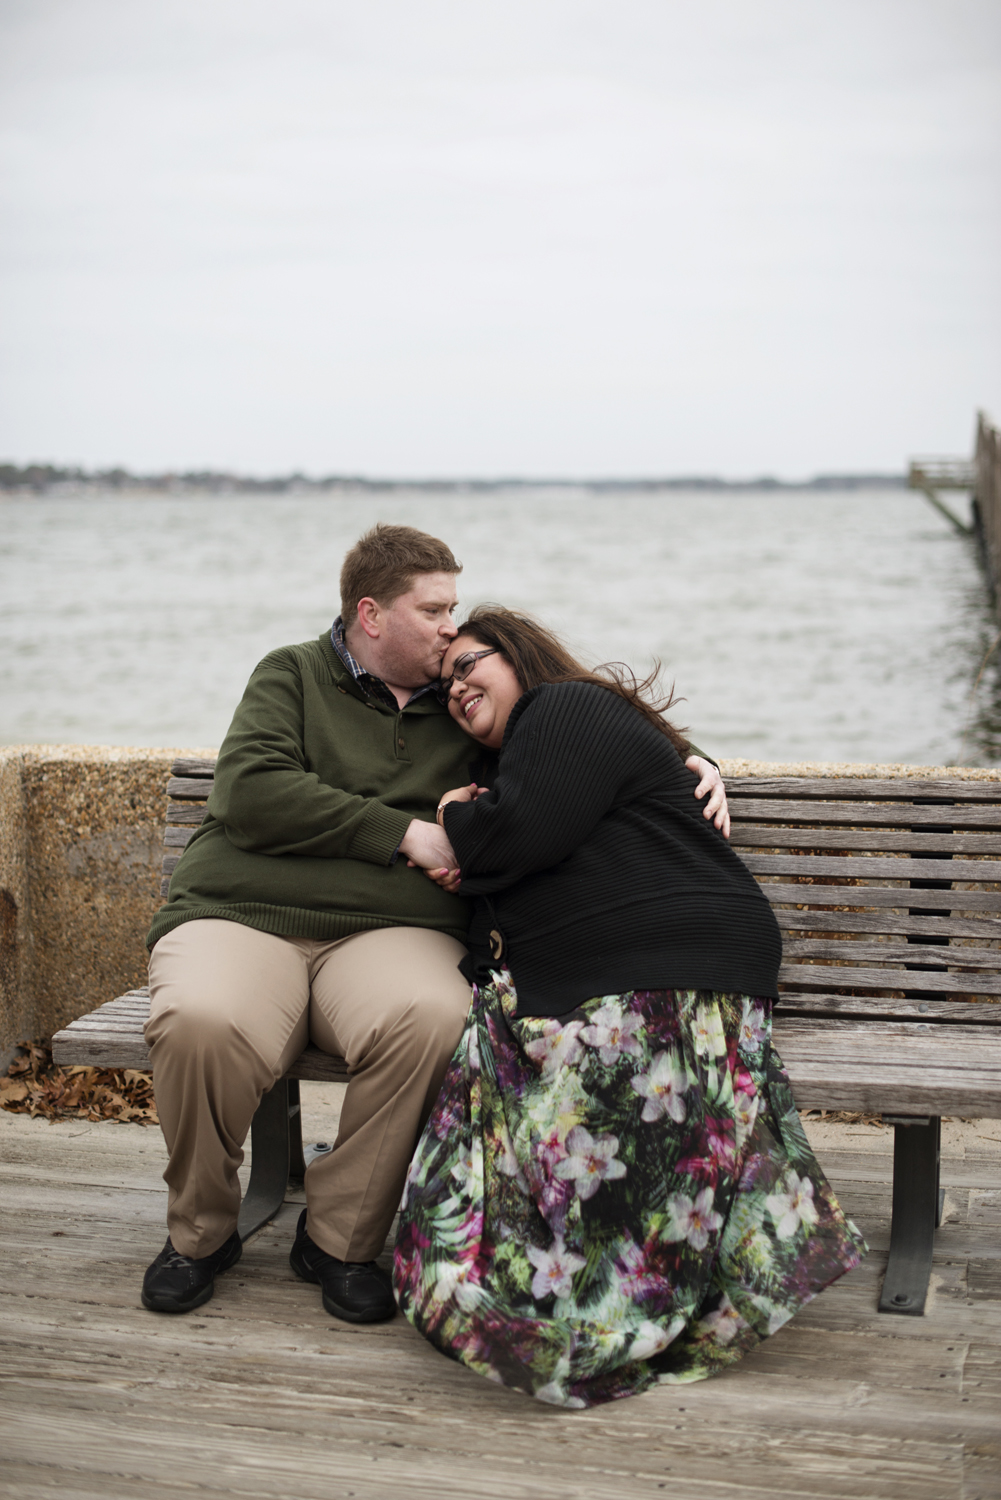 Posing ideas on a bench for an engagement session